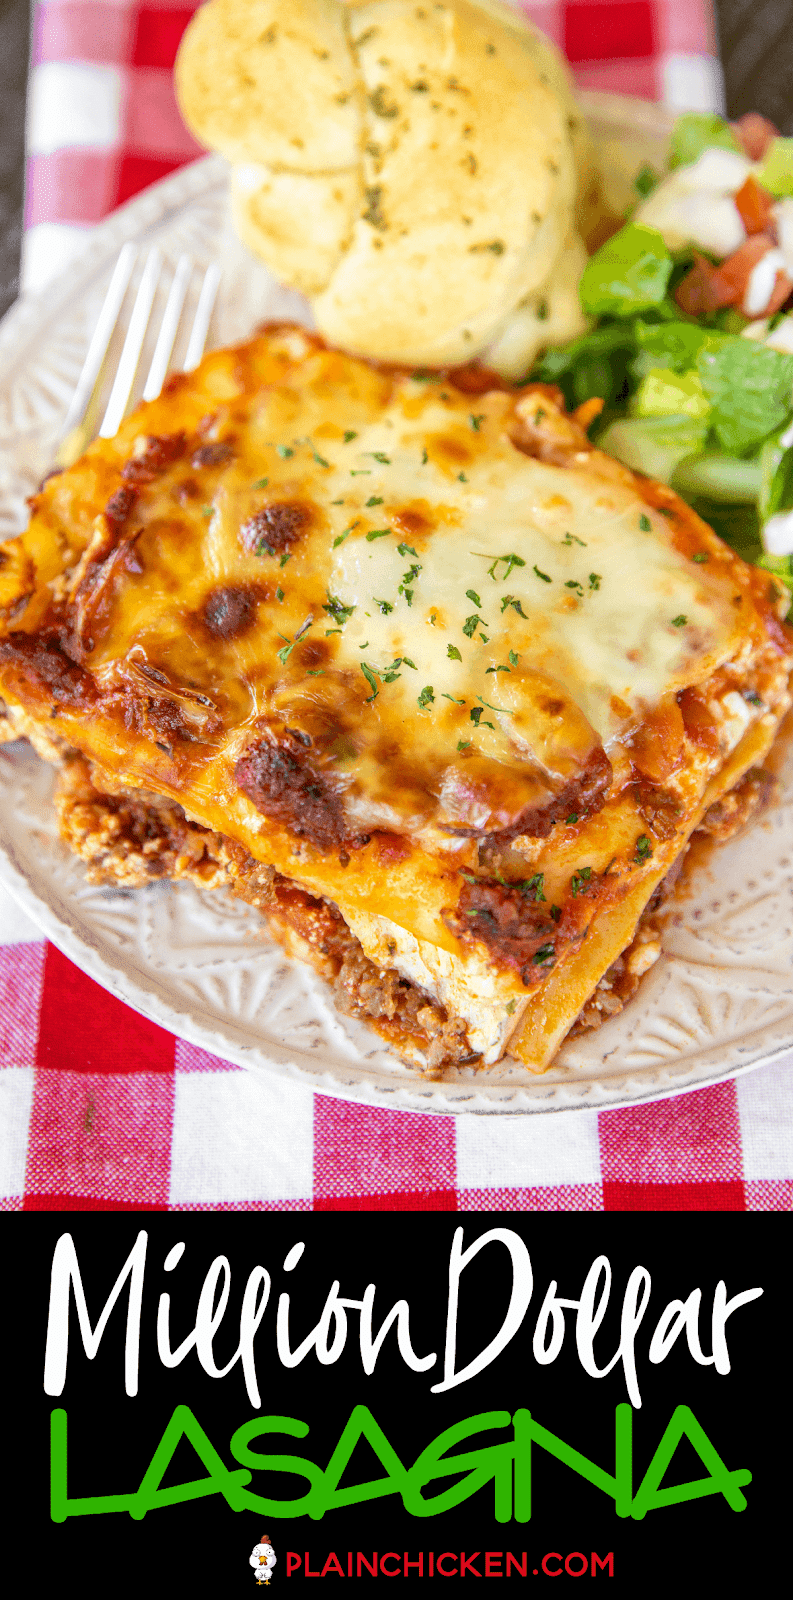 This Million Dollar Lasagna Is Seriously The Best Lasagna We Ve Ever Eaten So Easy To Make And Ta Easy Lasagna Recipe Small Lasagna Recipe Lasagna Casserole